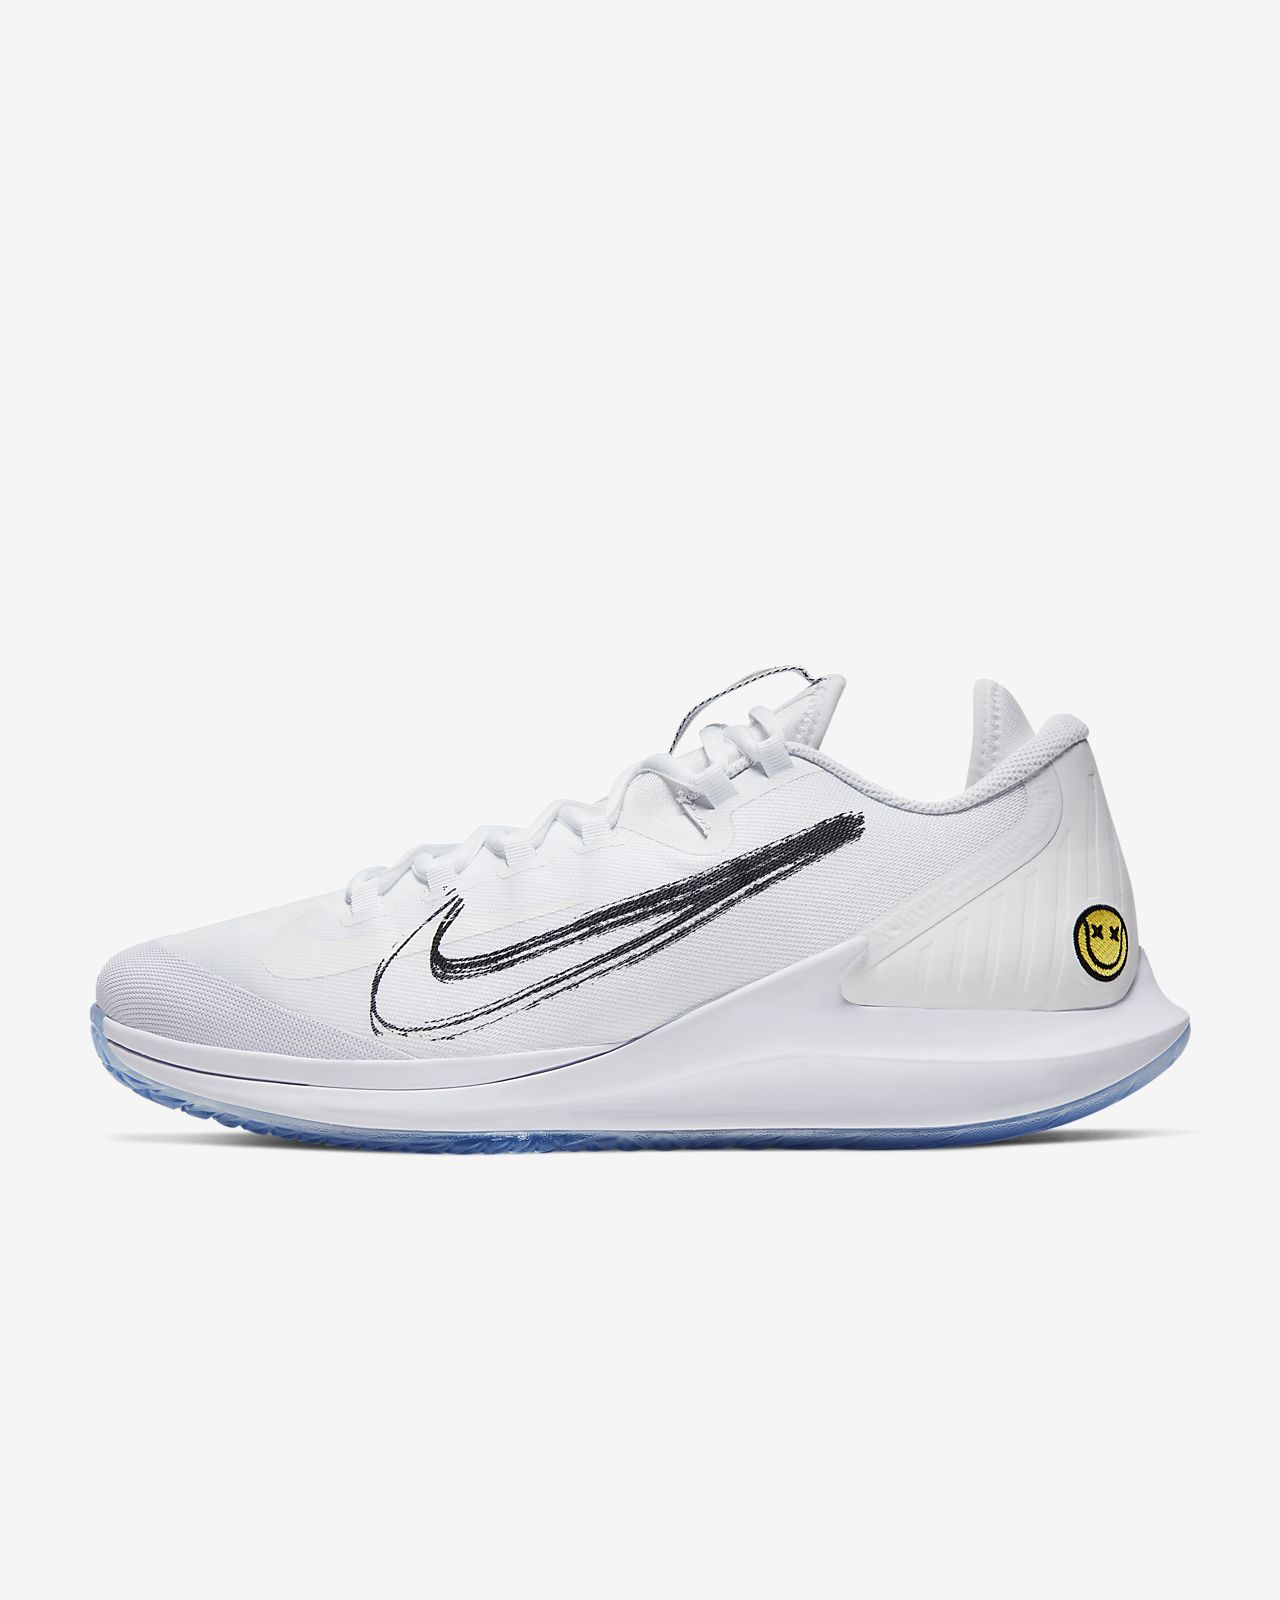 NikeCourt Air Zoom Zero Sabatilles de tennis - Home